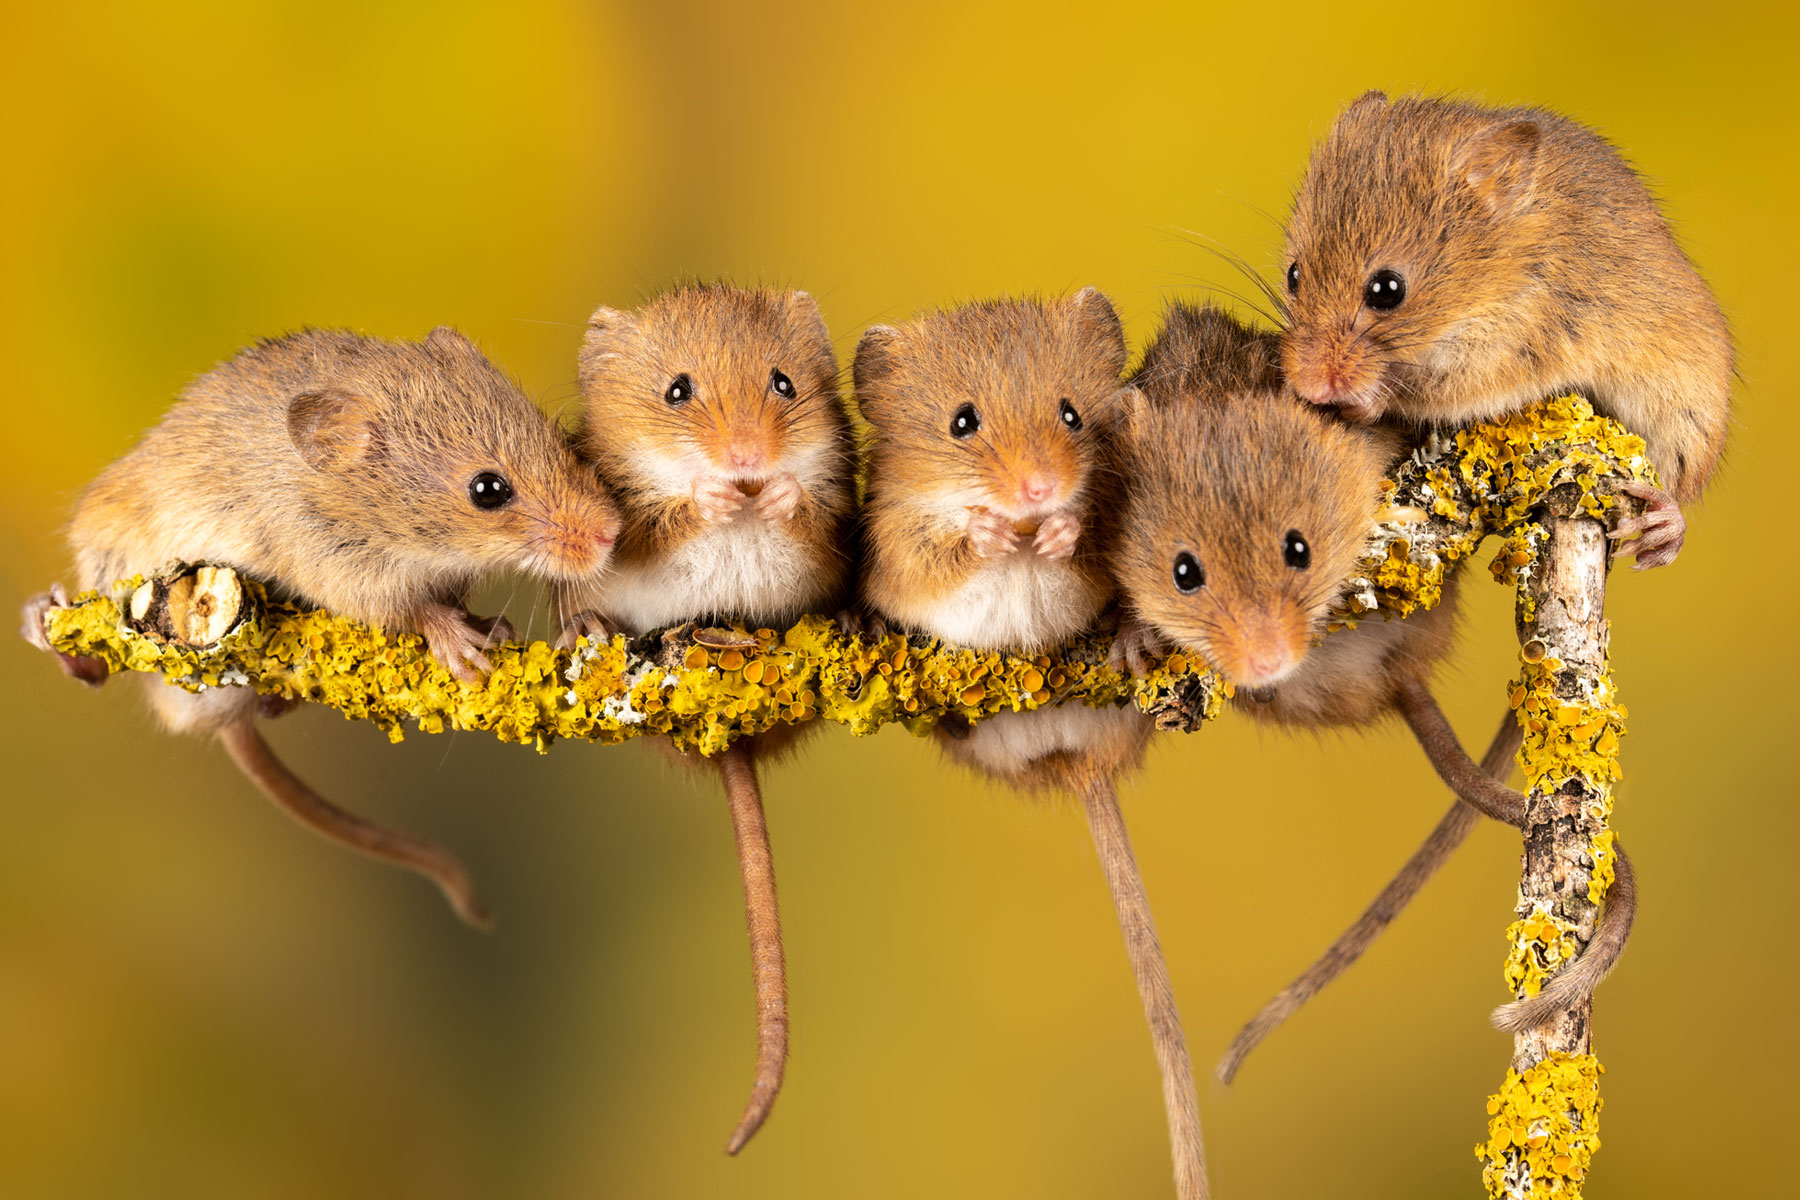 Rodents are awesome: extreme evolution